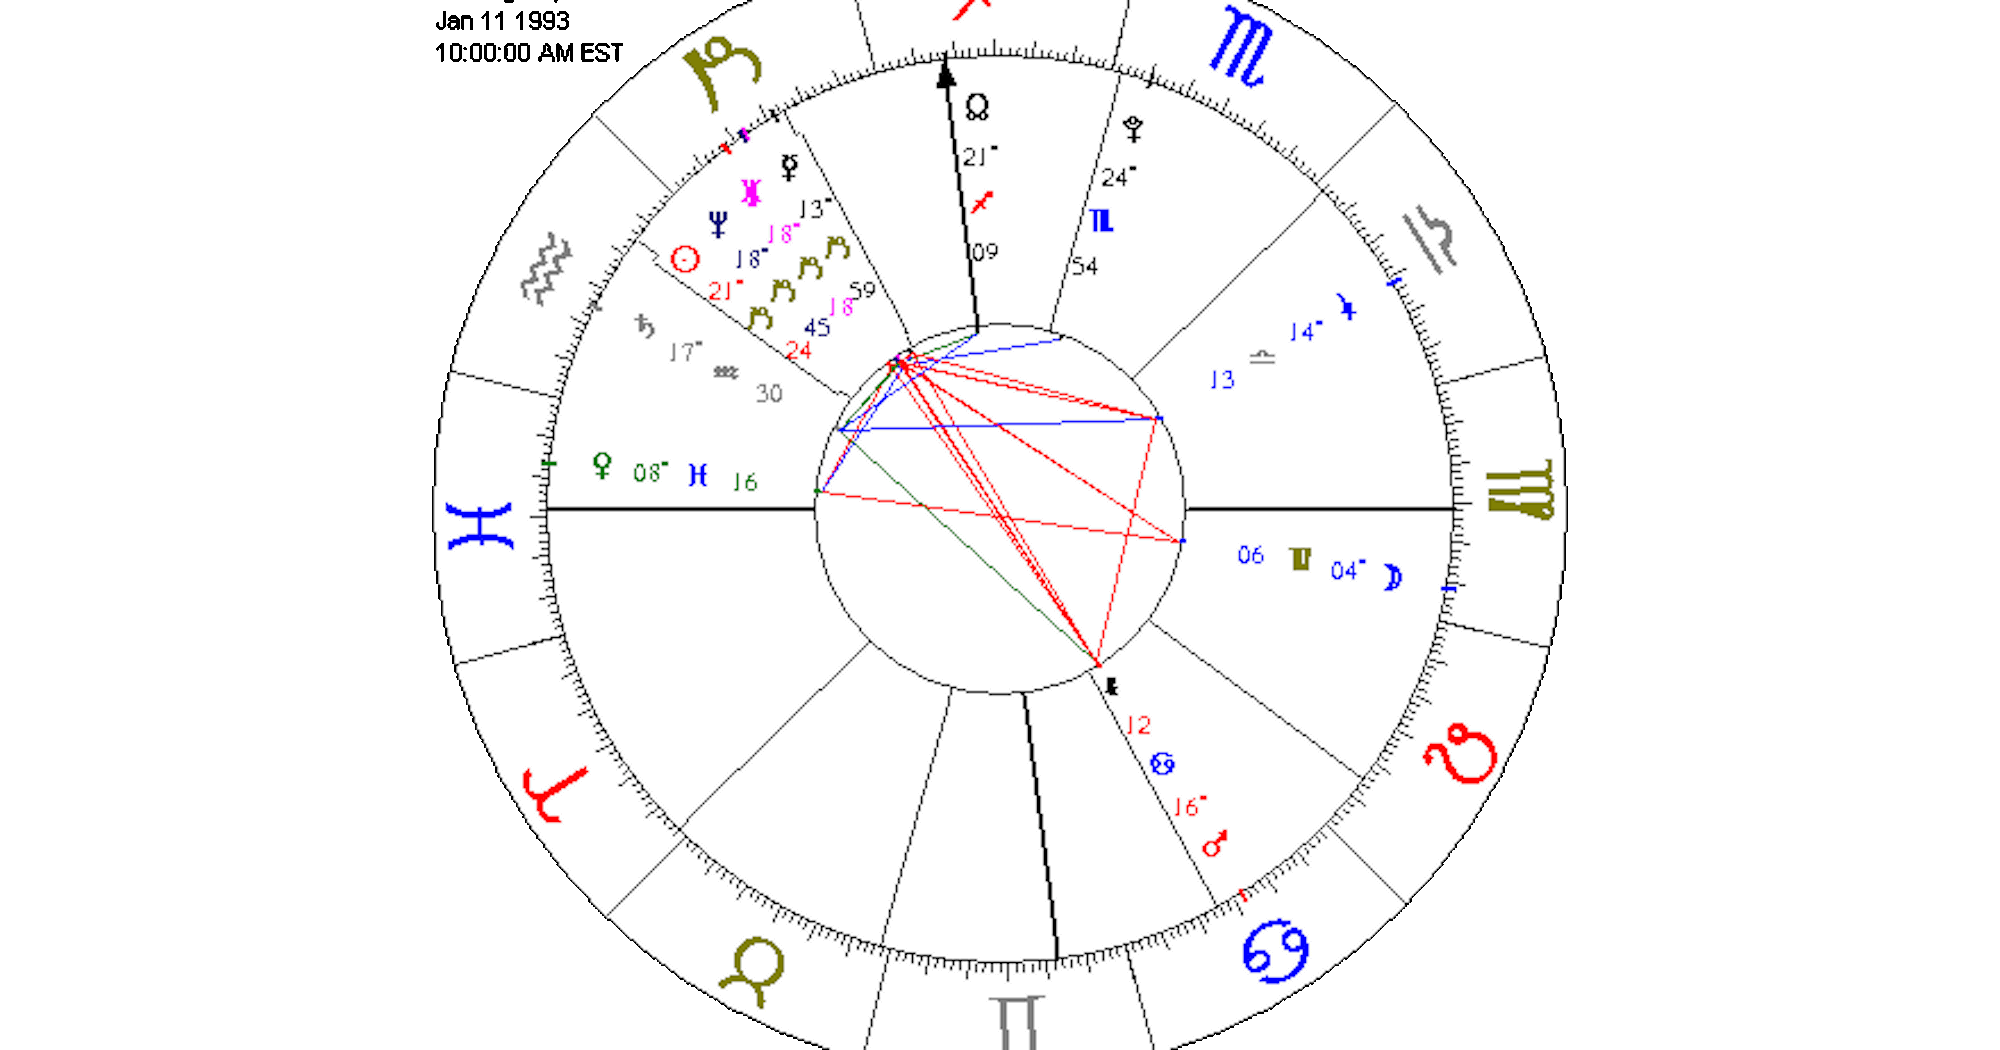 Astrology birth chart analysis how to read natal chart nvjuhfo Image collections